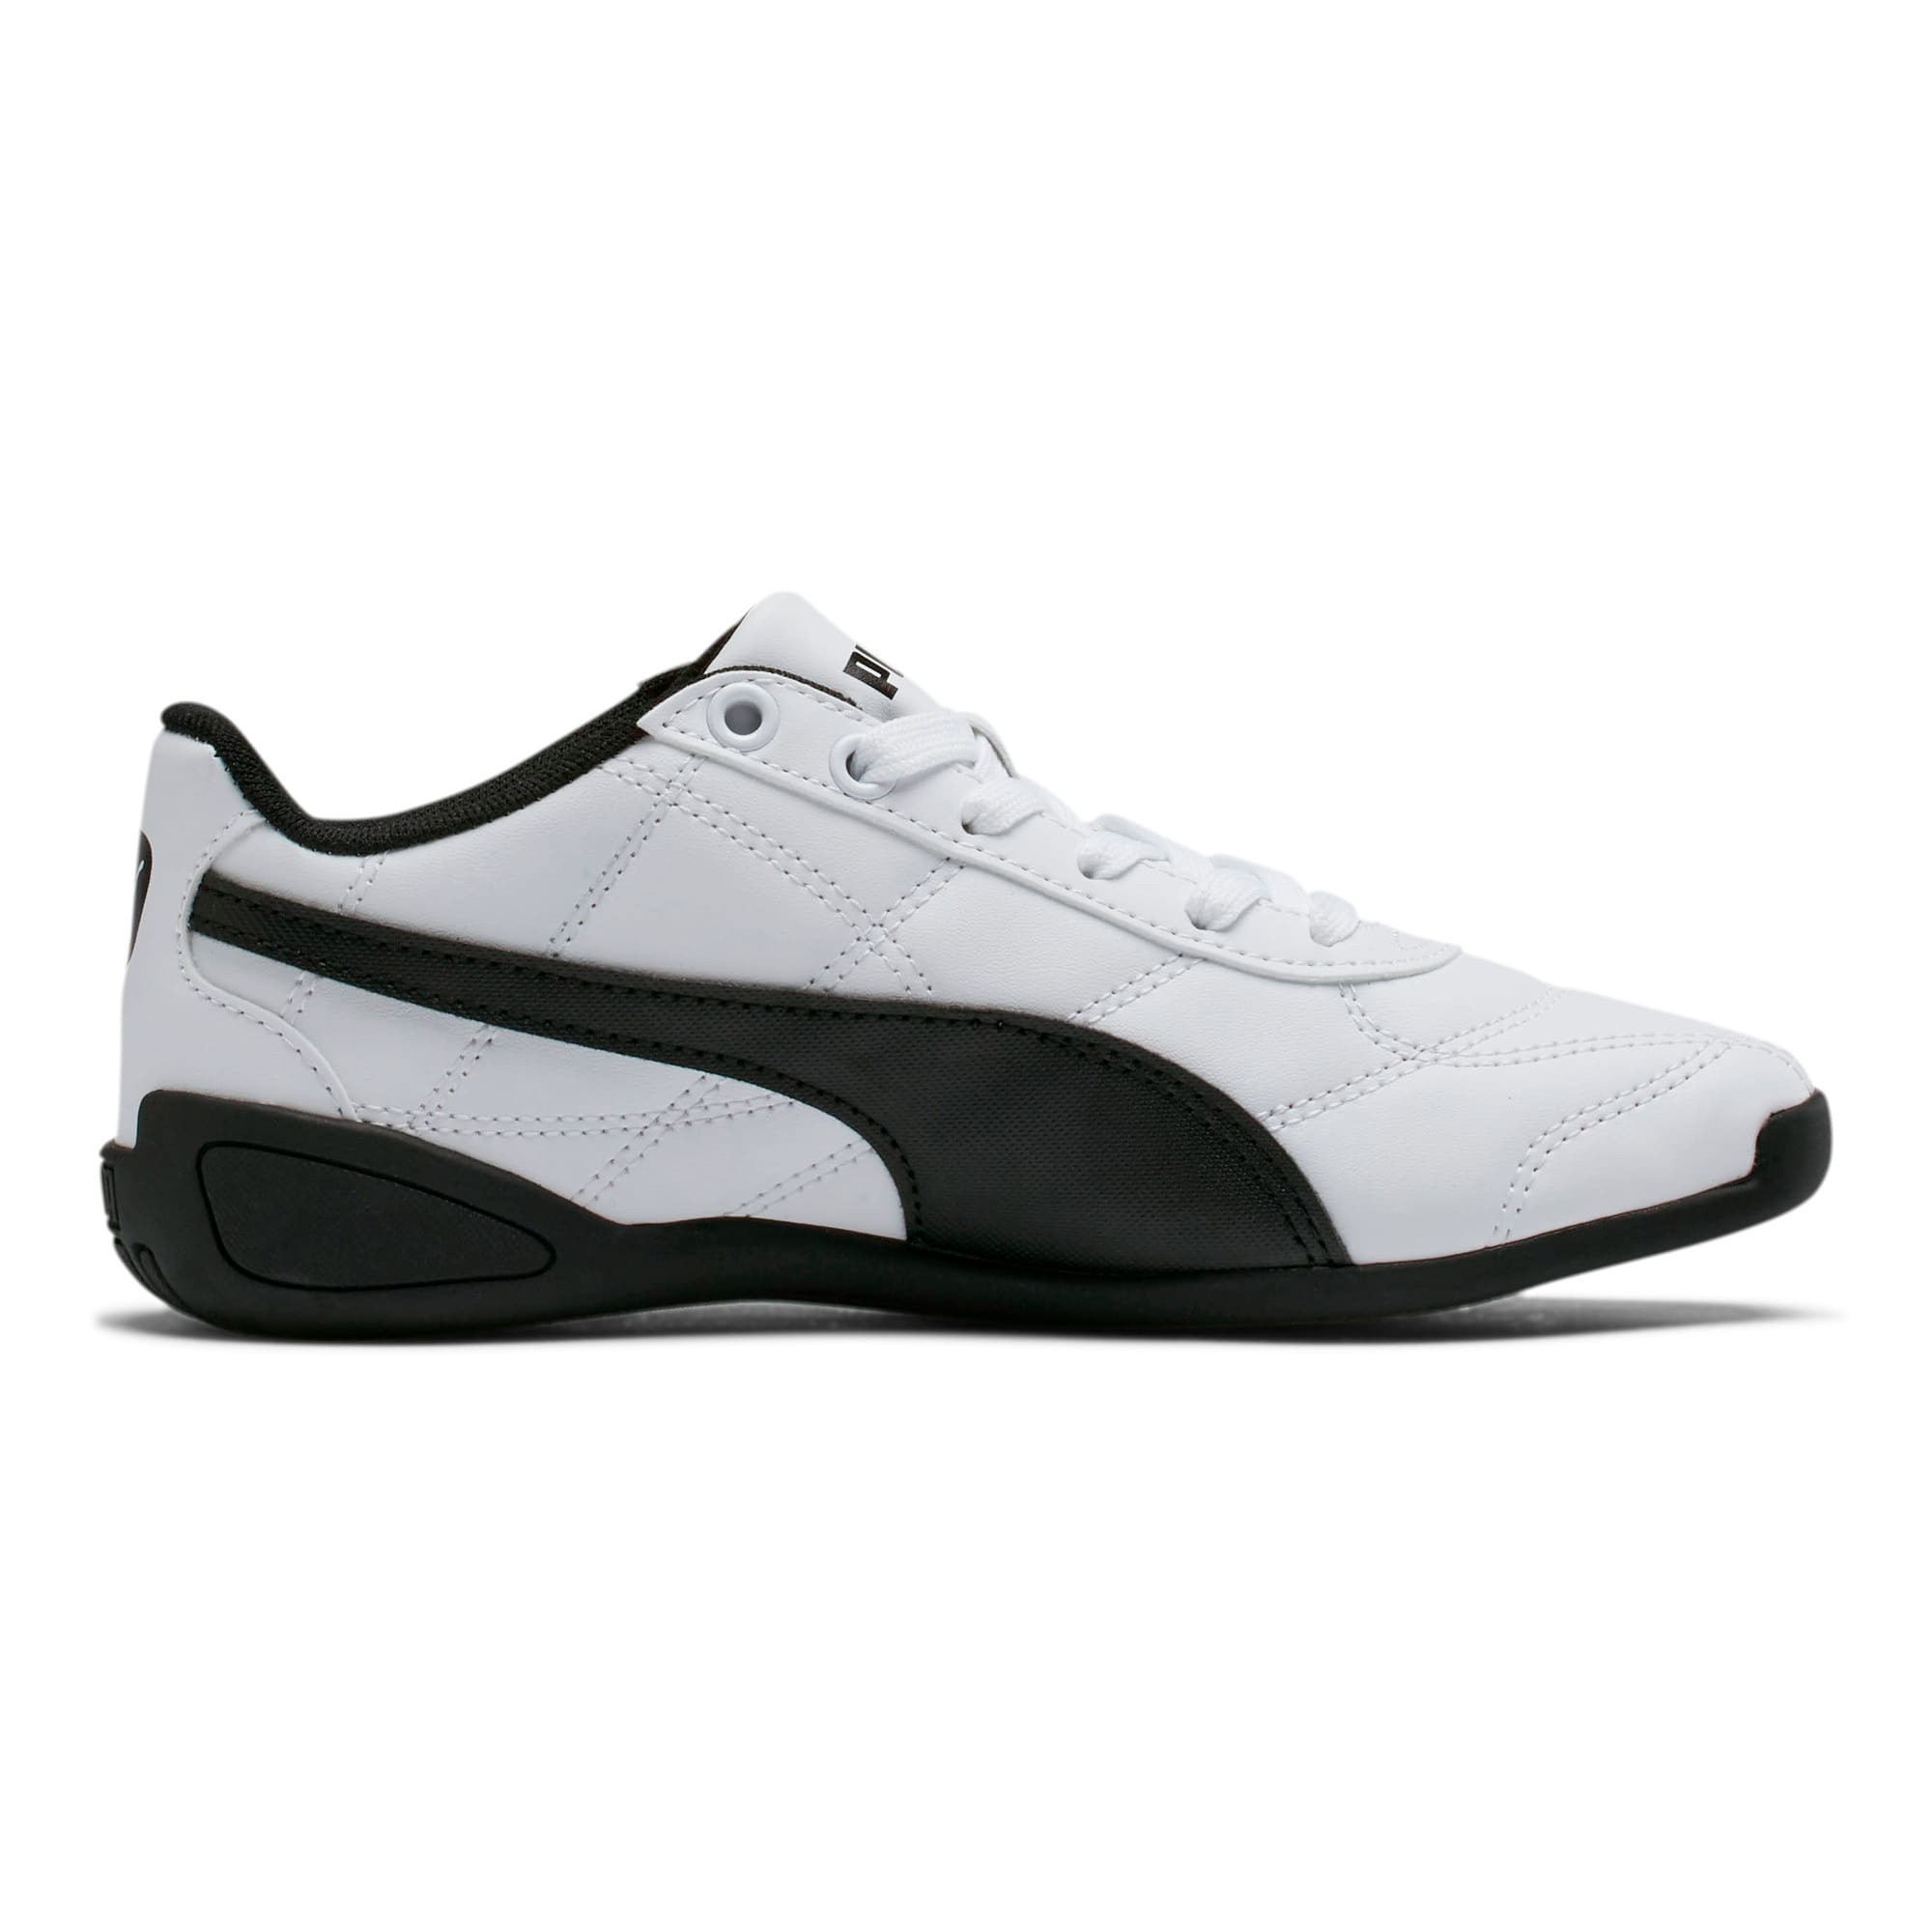 Thumbnail 5 of Tune Cat 3 Shoes JR, Puma White-Puma Black, medium